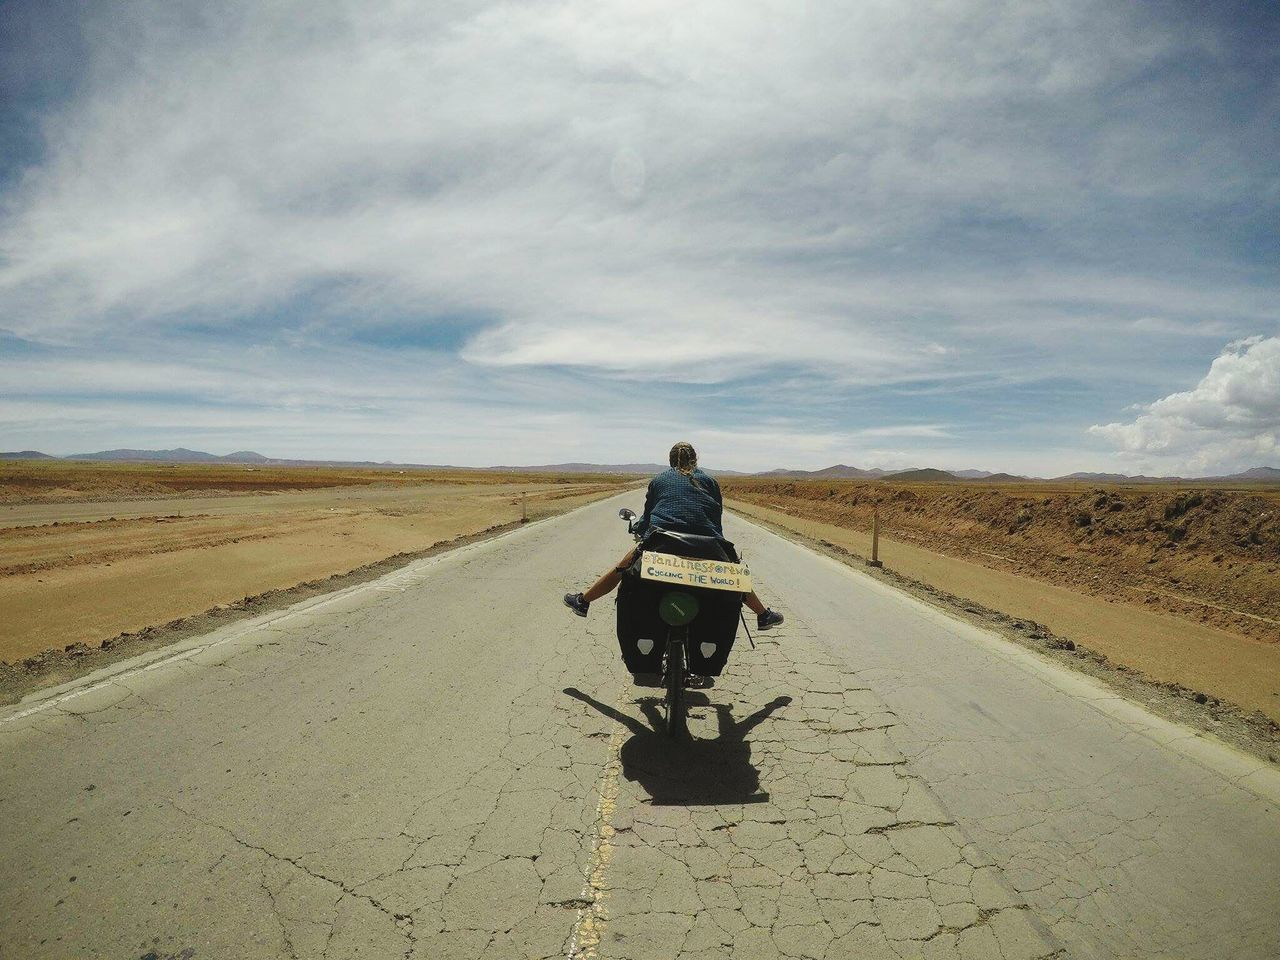 On the road again, hitting the roads up like never before : Bike Touring Bolivia Life On The Road Bike Photography Bikelife EyeEmNewHere Bikesaroundtheworld Biketouring Journey Travel Landscape_Collection Landscape_photography Travel The World Travel Photography Travel Destinations Outdoors Adventure Time World Places Travel Girl Southamerica Getting Away From It All Remote Adventure Road Trip Photograpghy Biketrip EyeEmNewHere